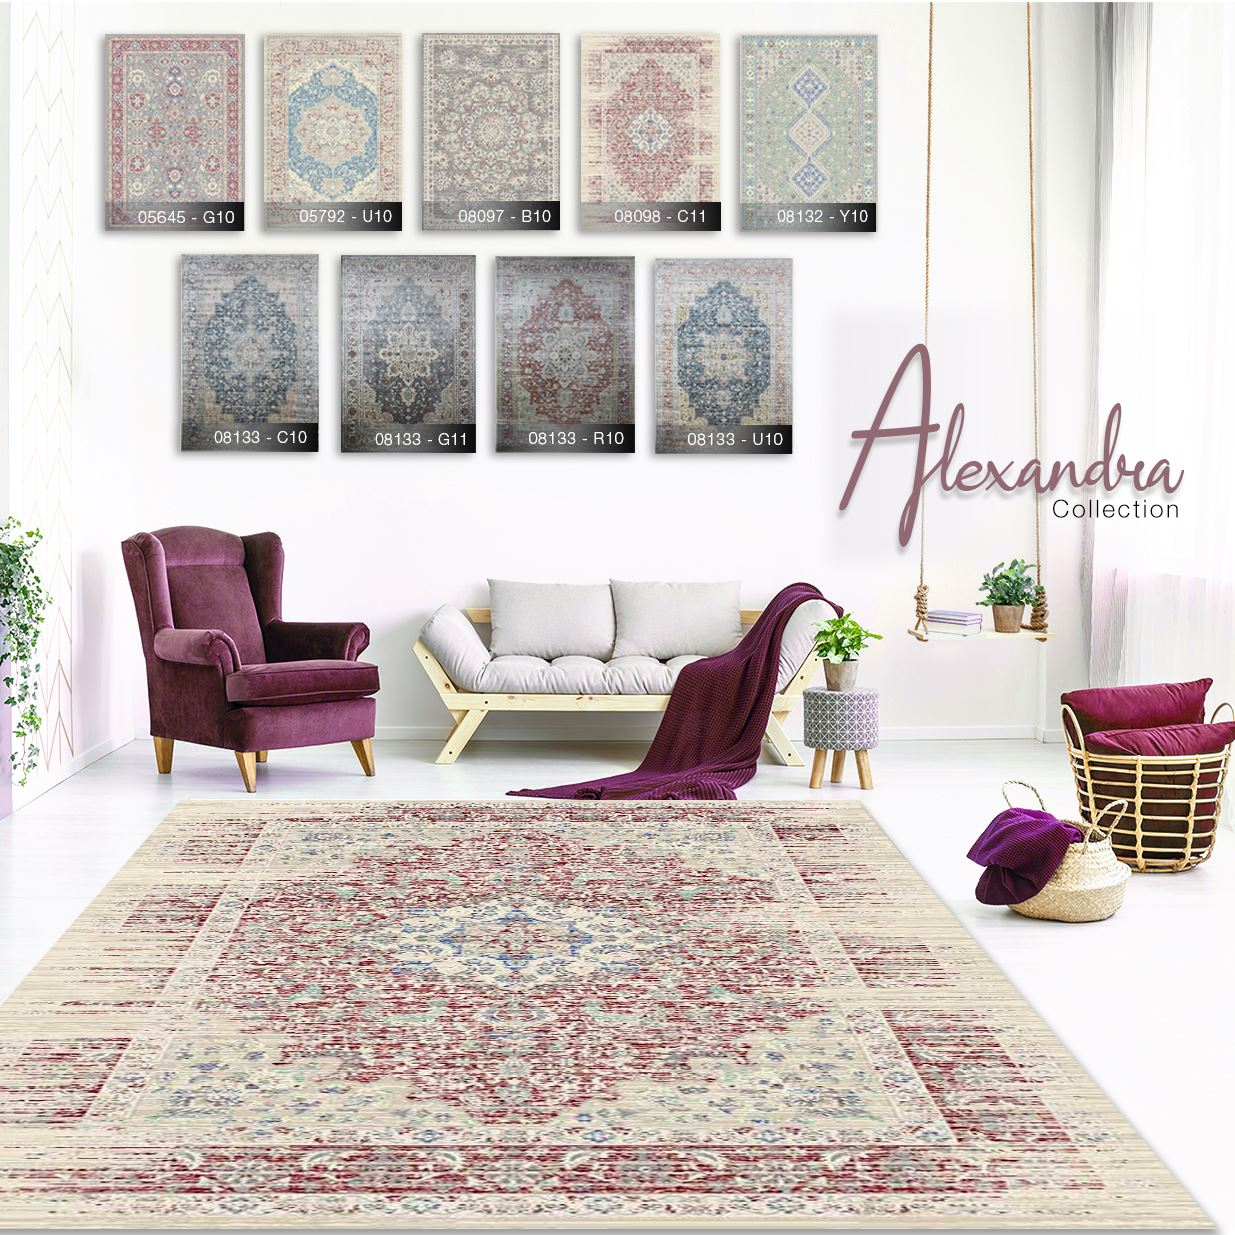 Details About A2z Rug Large Medium Traditional Living Room Floor Rugs Boho Berber Style Carpet